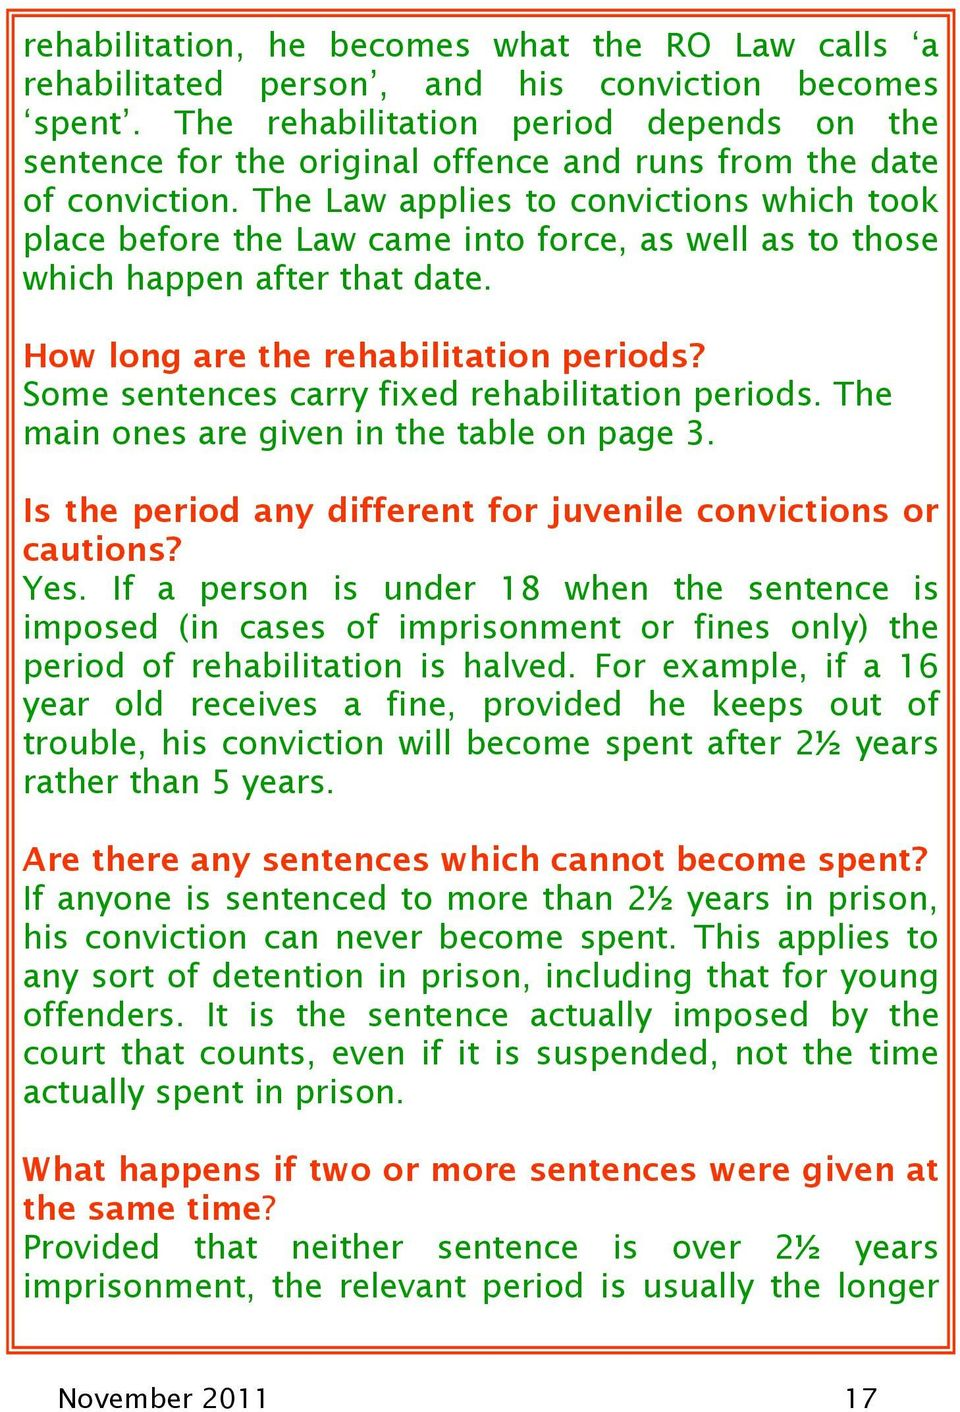 The Law applies to convictions which took place before the Law came into force, as well as to those which happen after that date. How long are the rehabilitation periods?